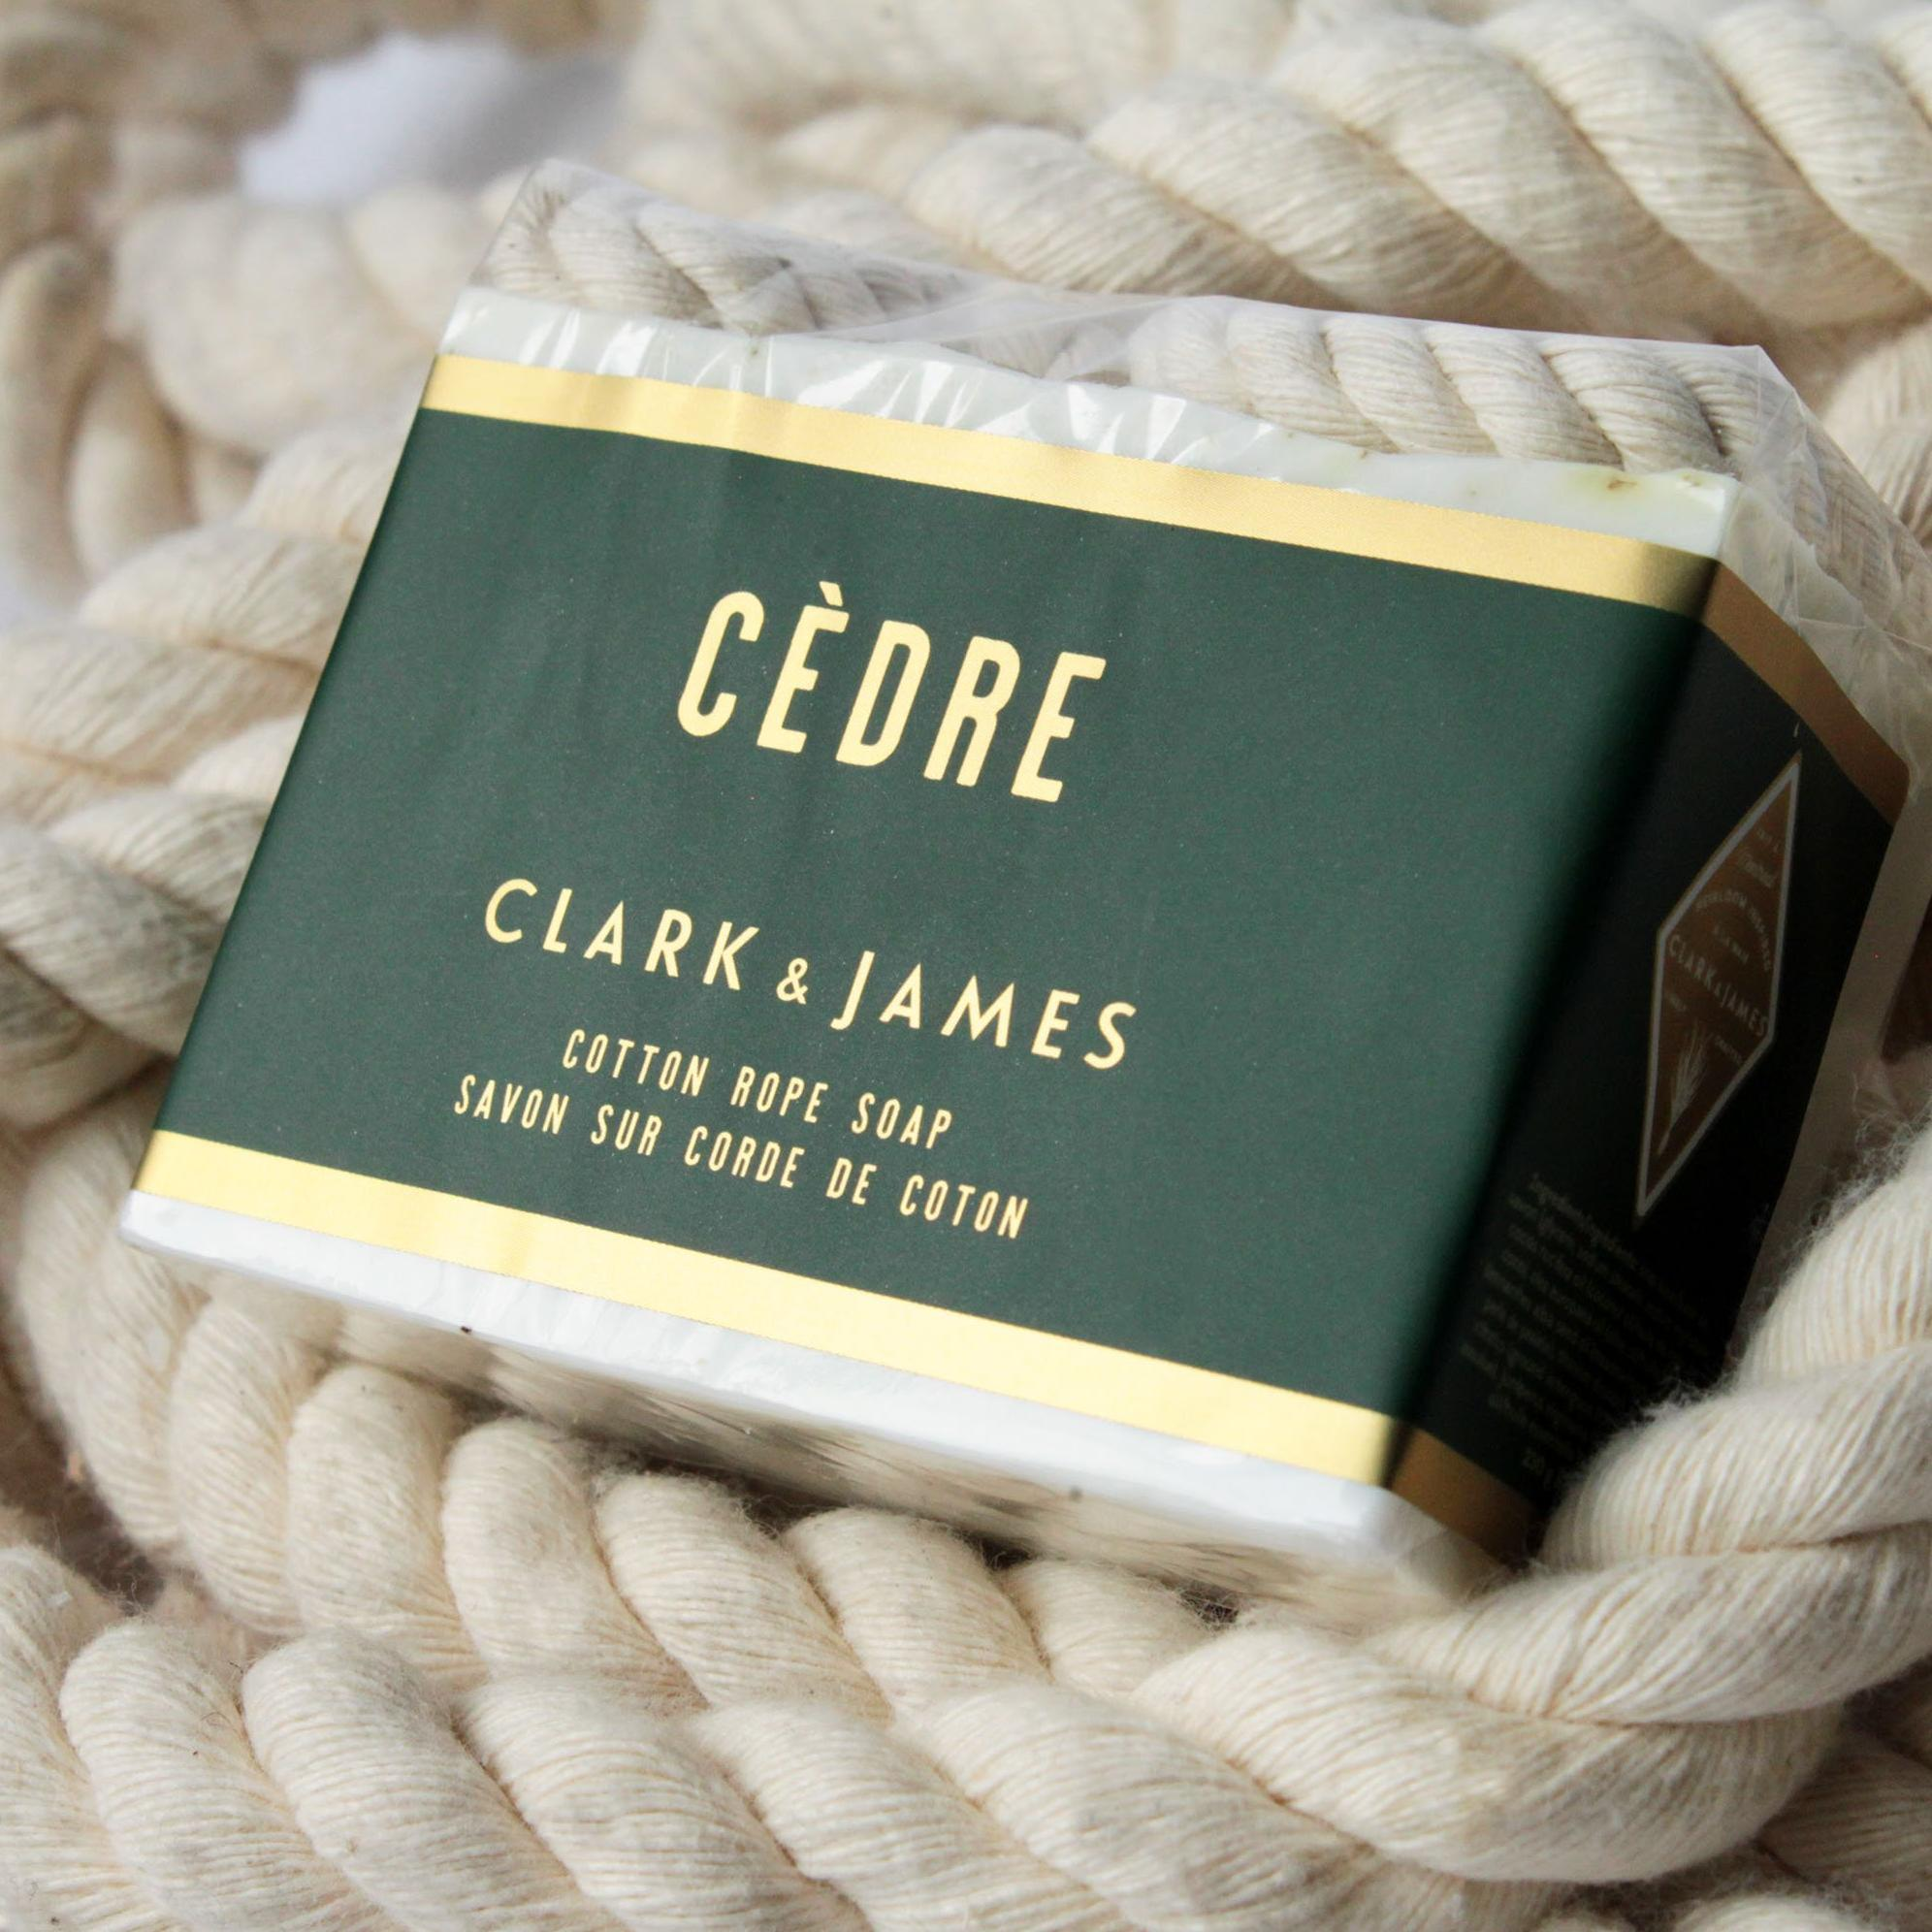 Cèdre cotton rope soap